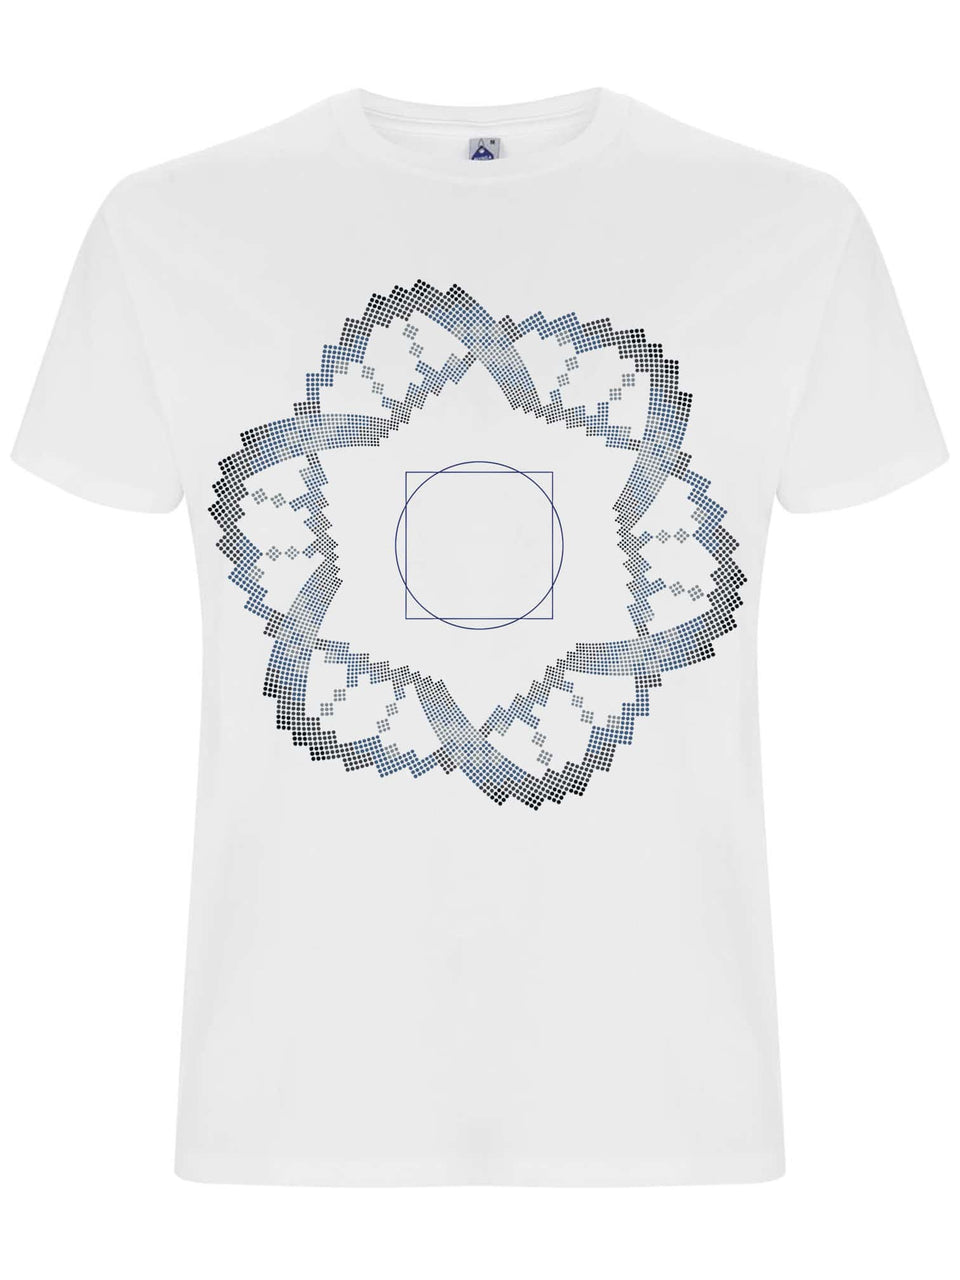 Square in a Circle Made To Order Men T-Shirt - White